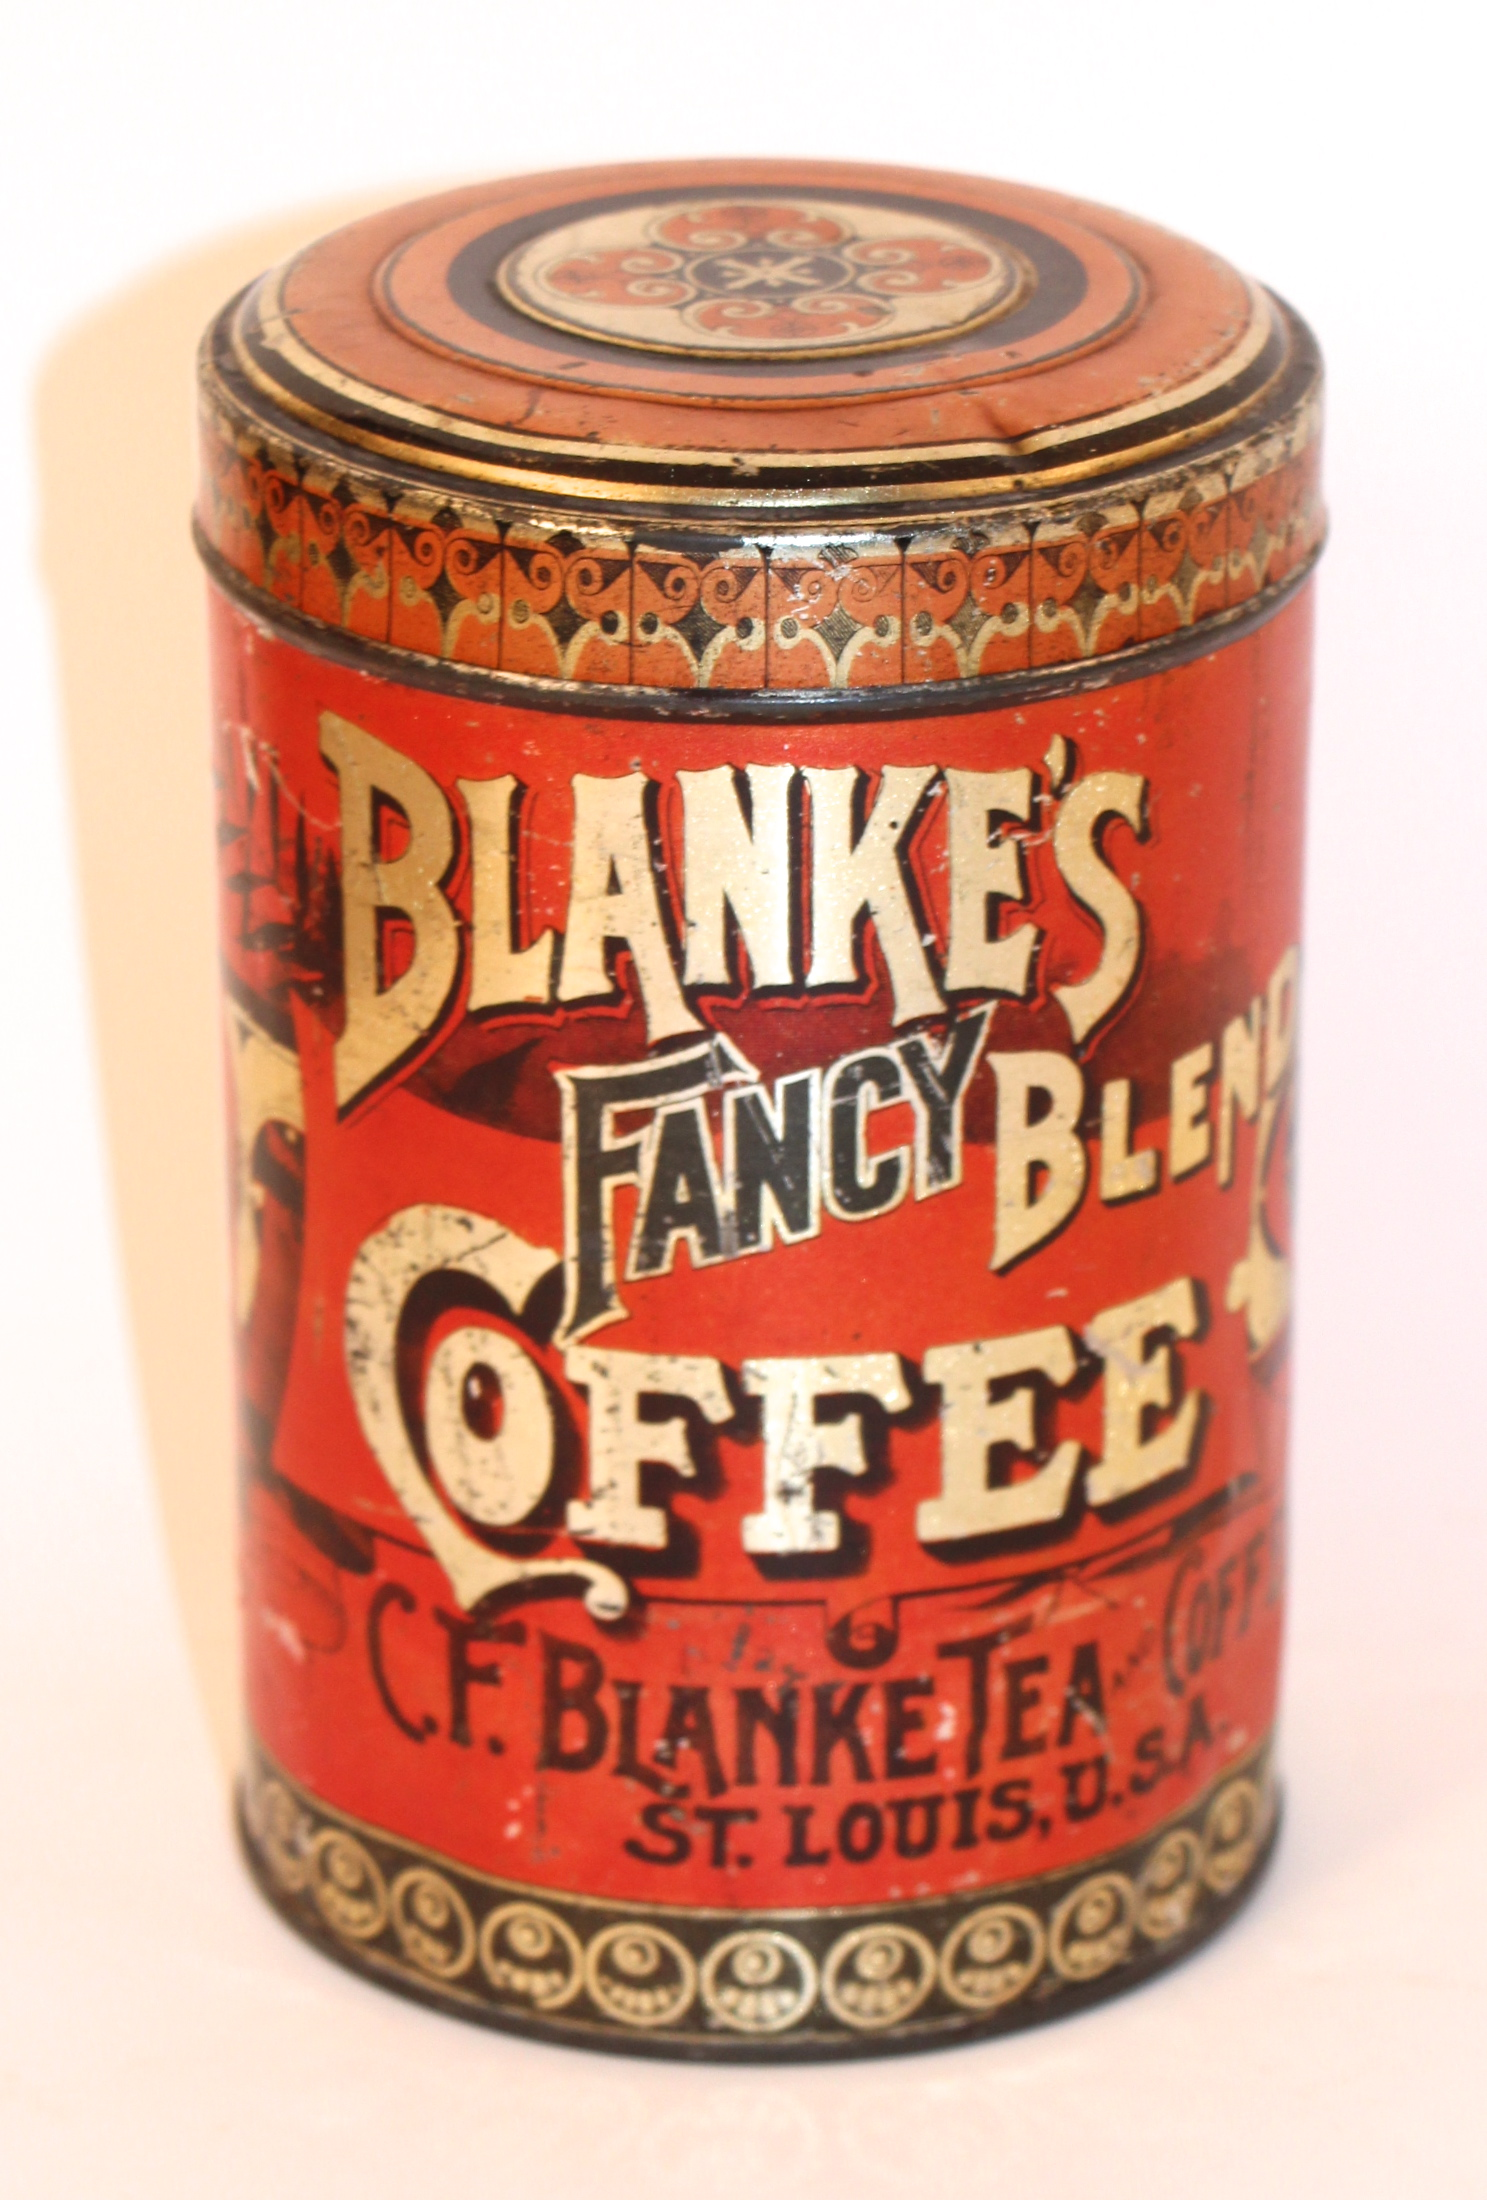 Blanke's Fancy Coffee Tin, St. Louis, MO